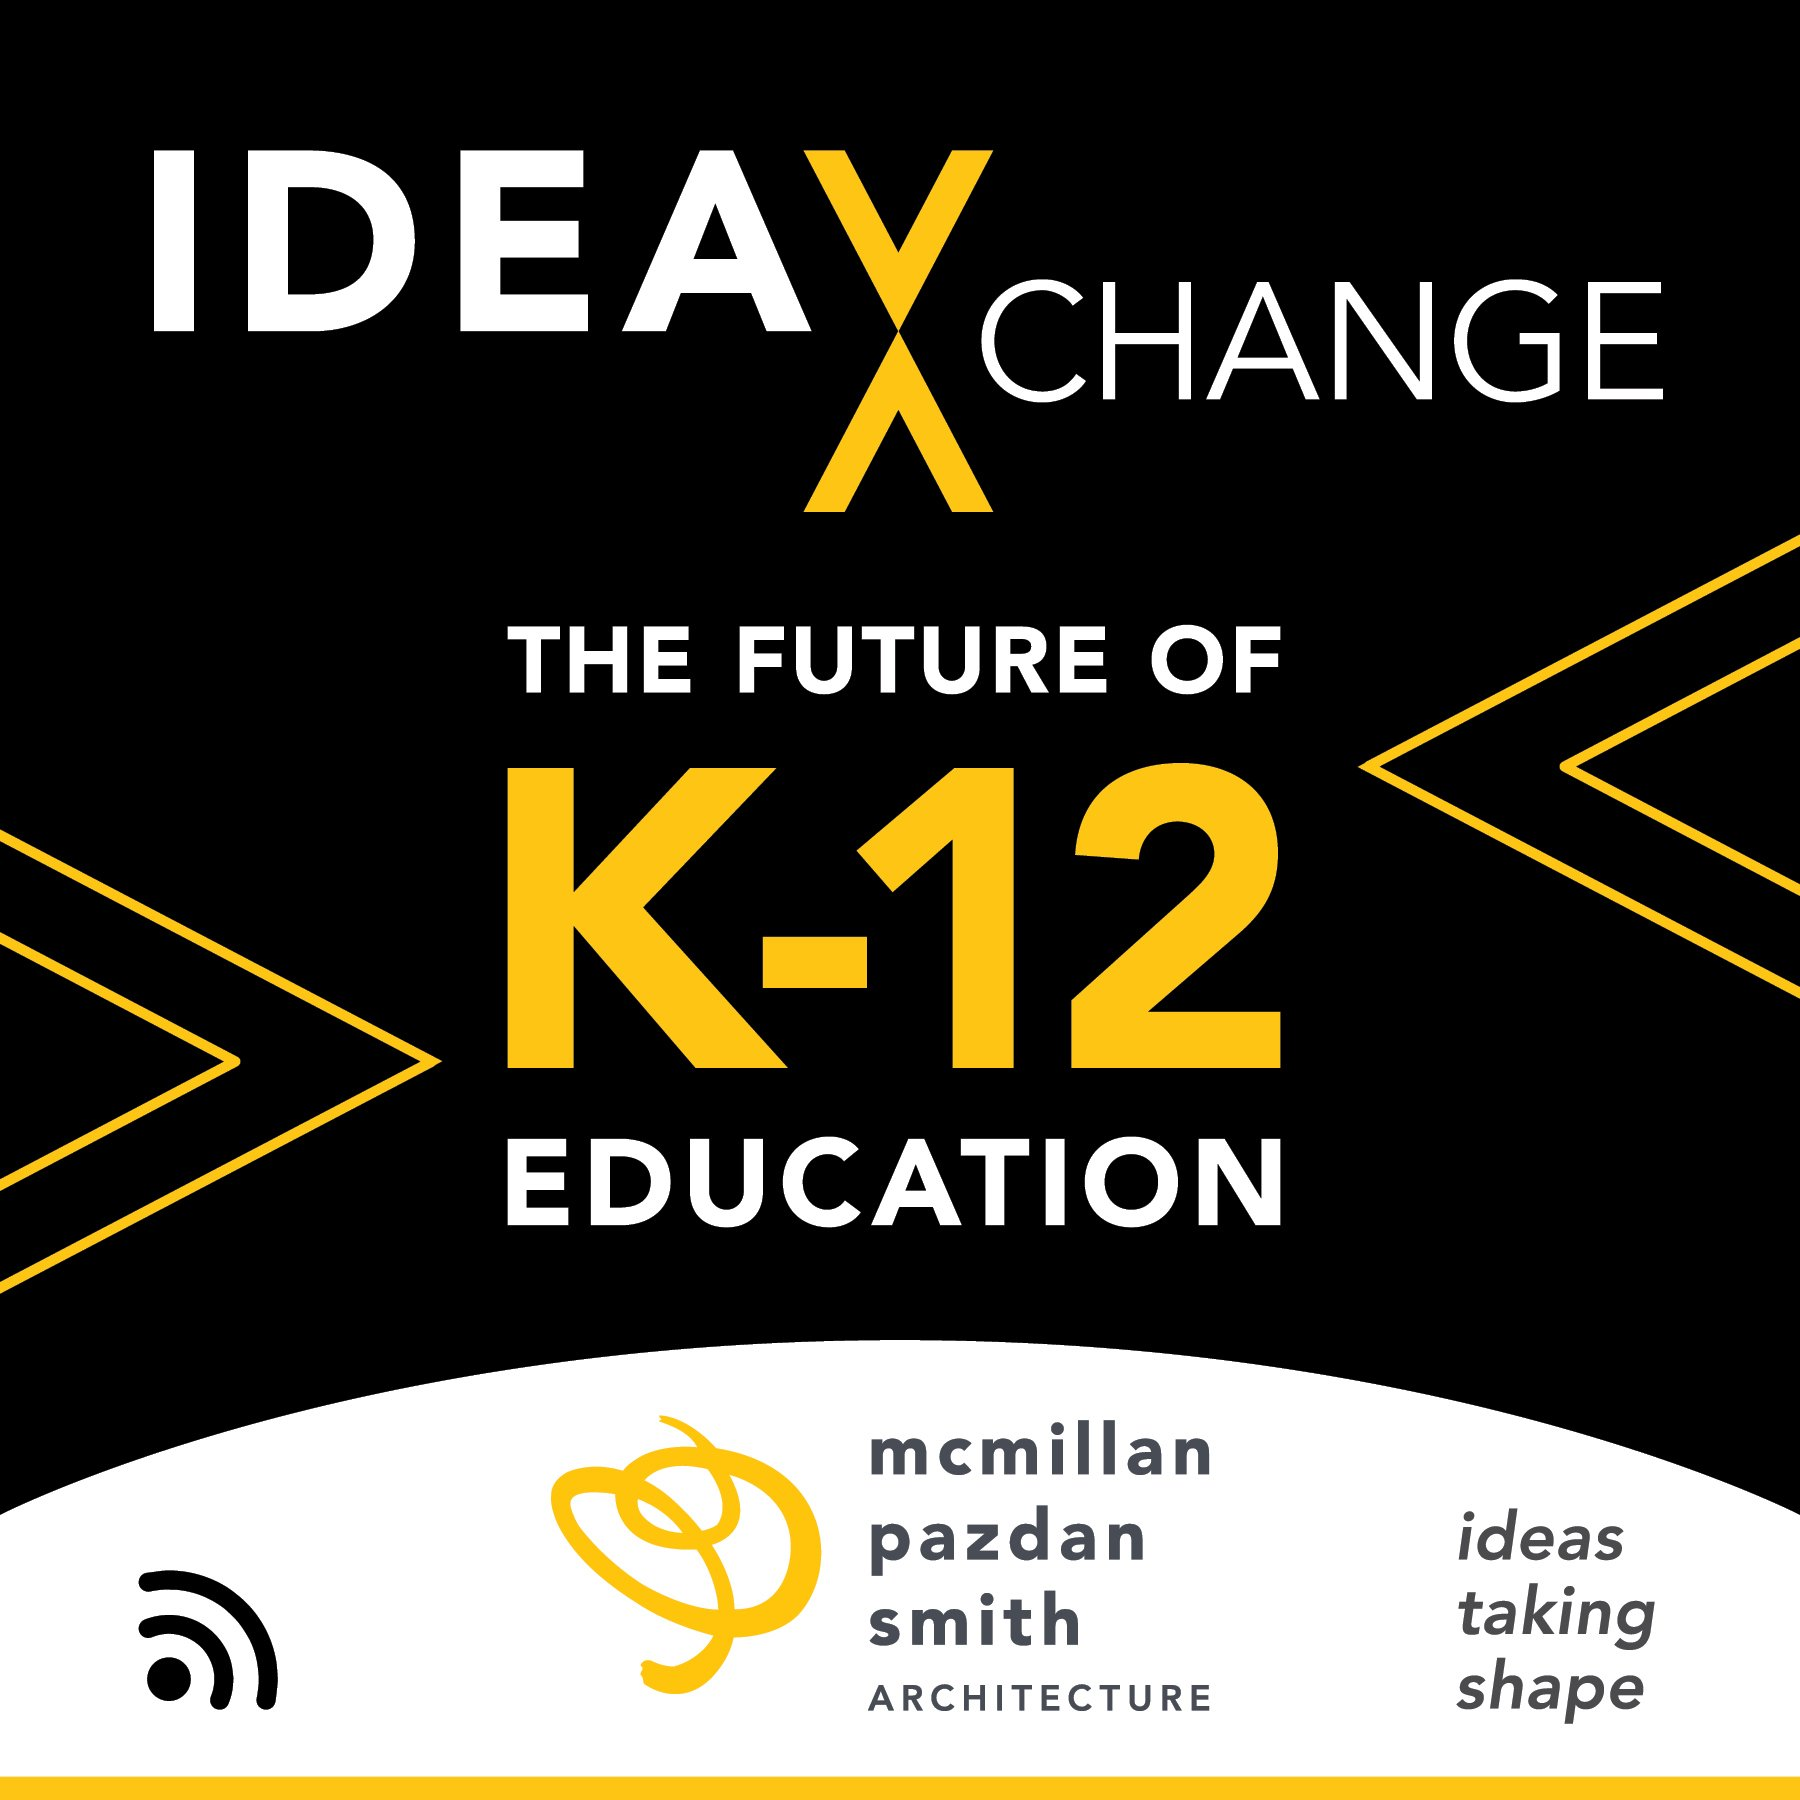 ideaXchange The Future of K-12 Education Podcast icon